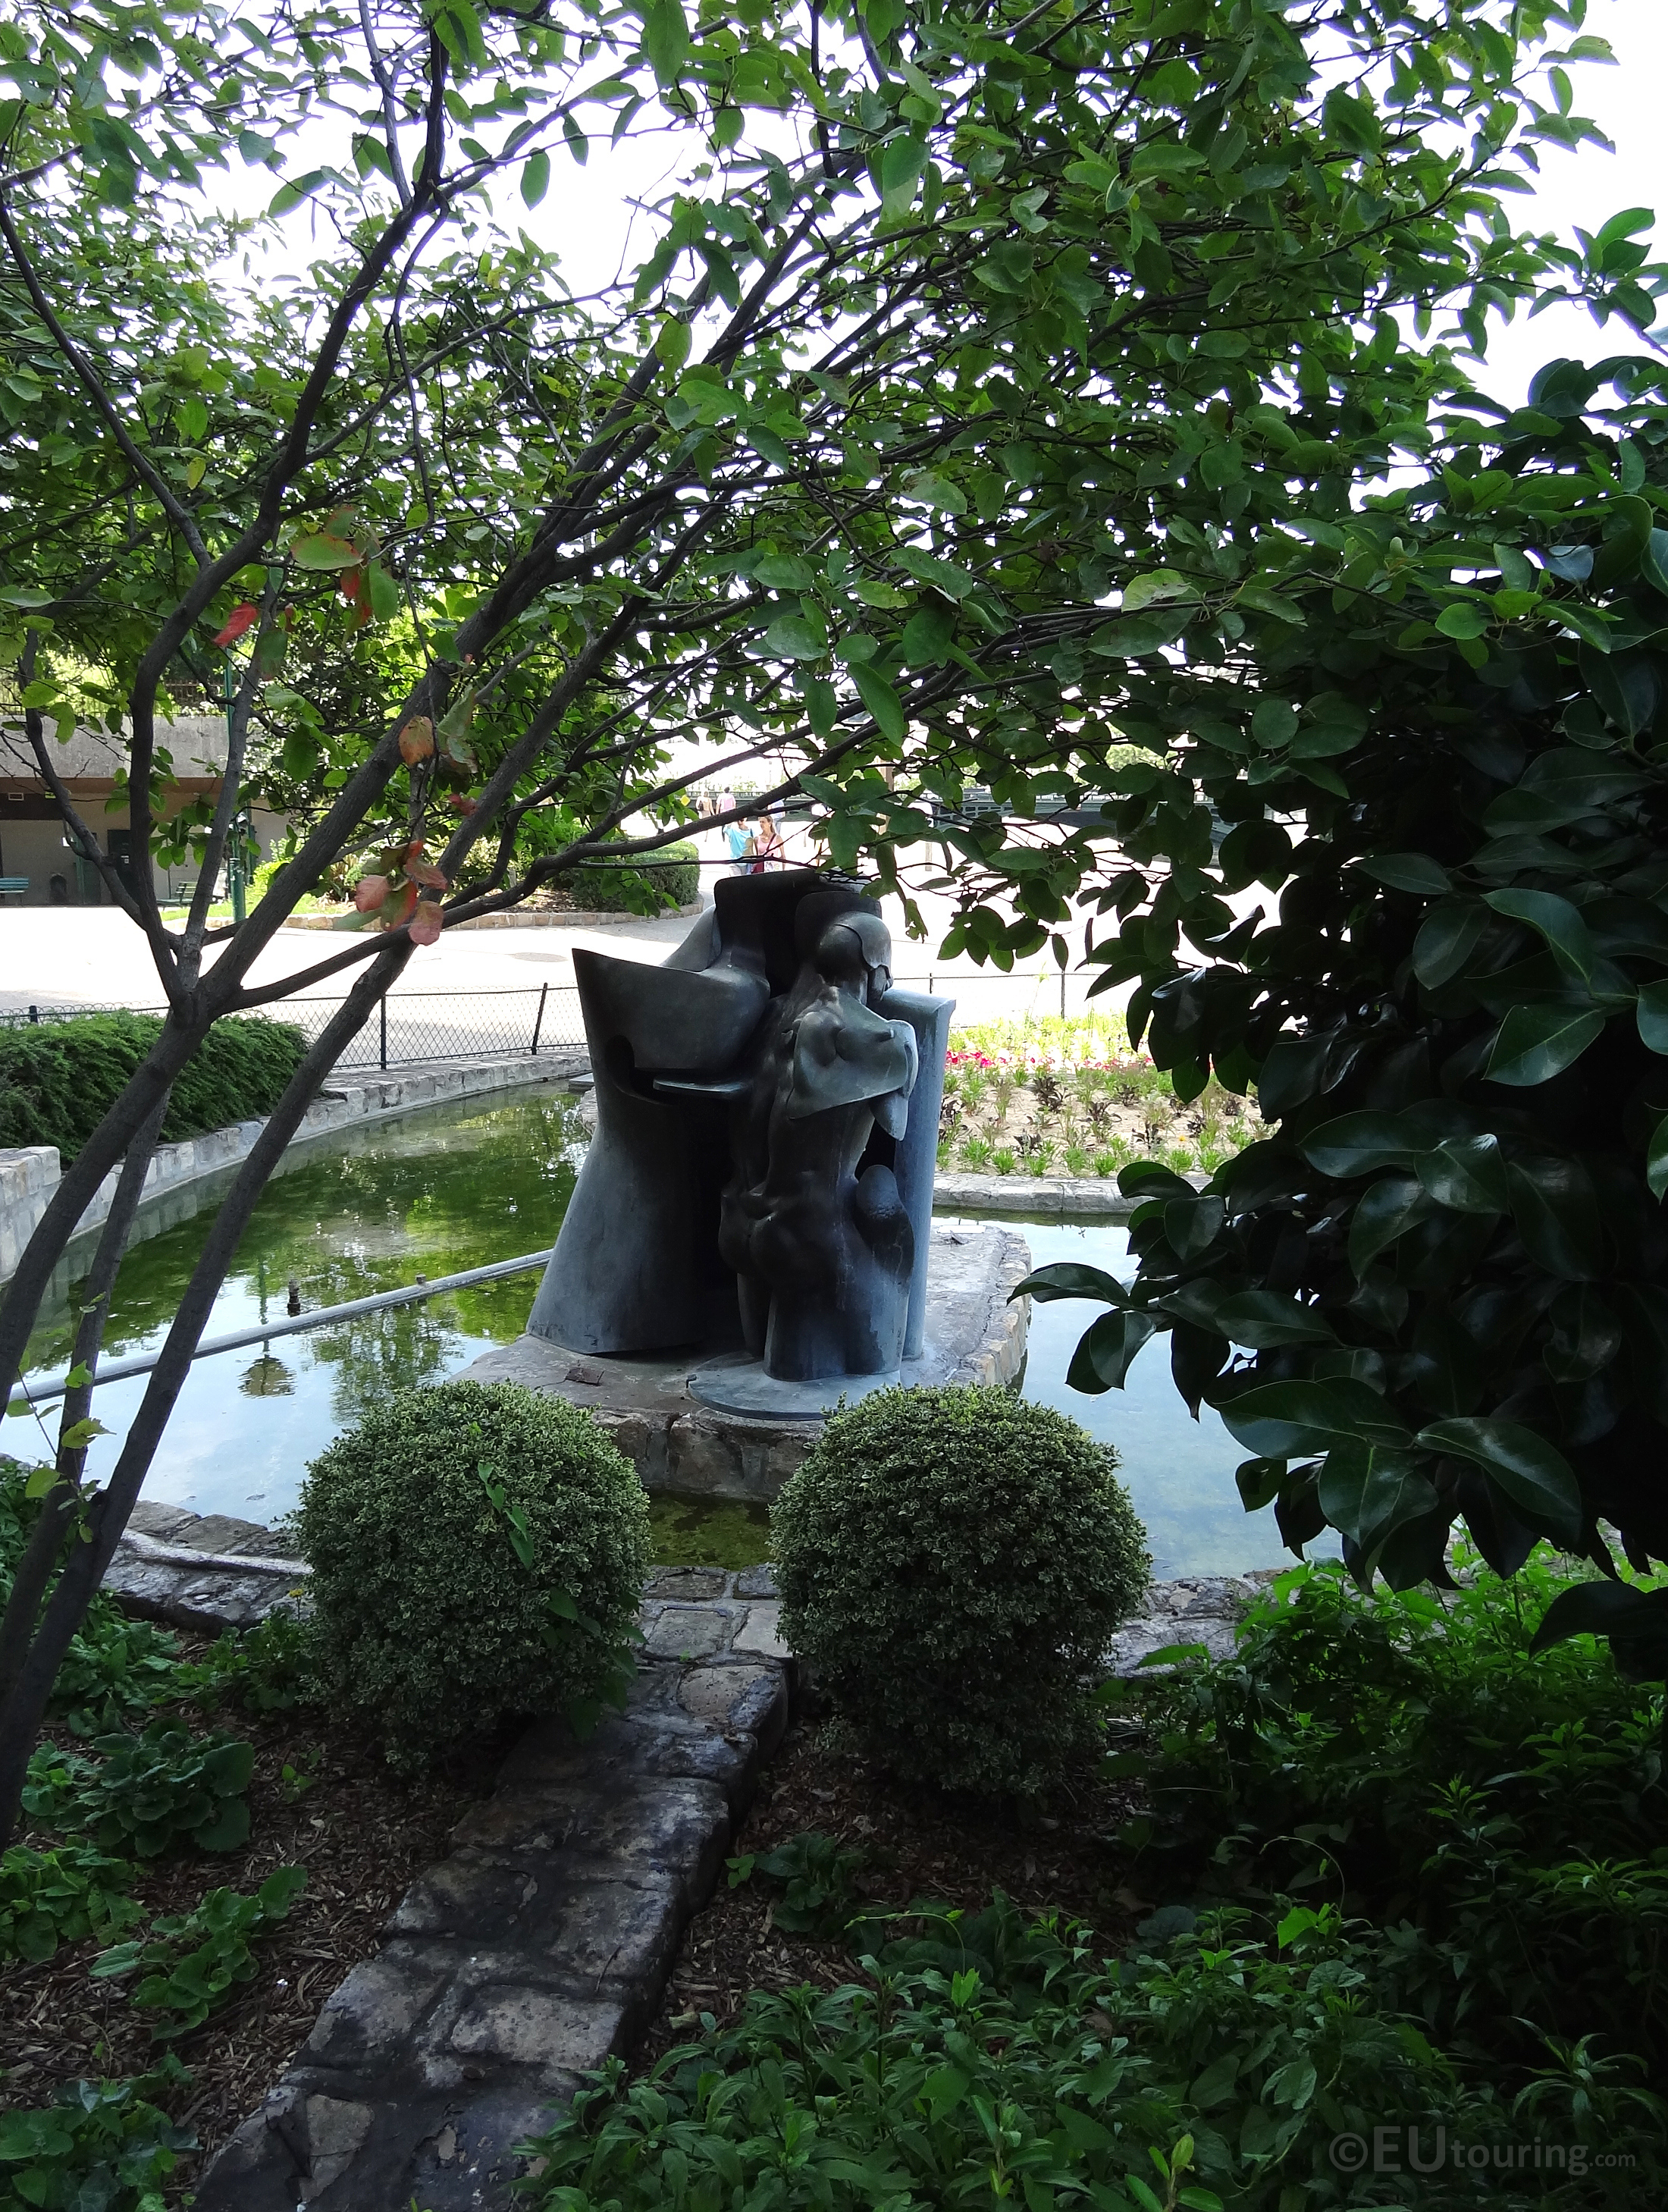 Water feature within the gardens